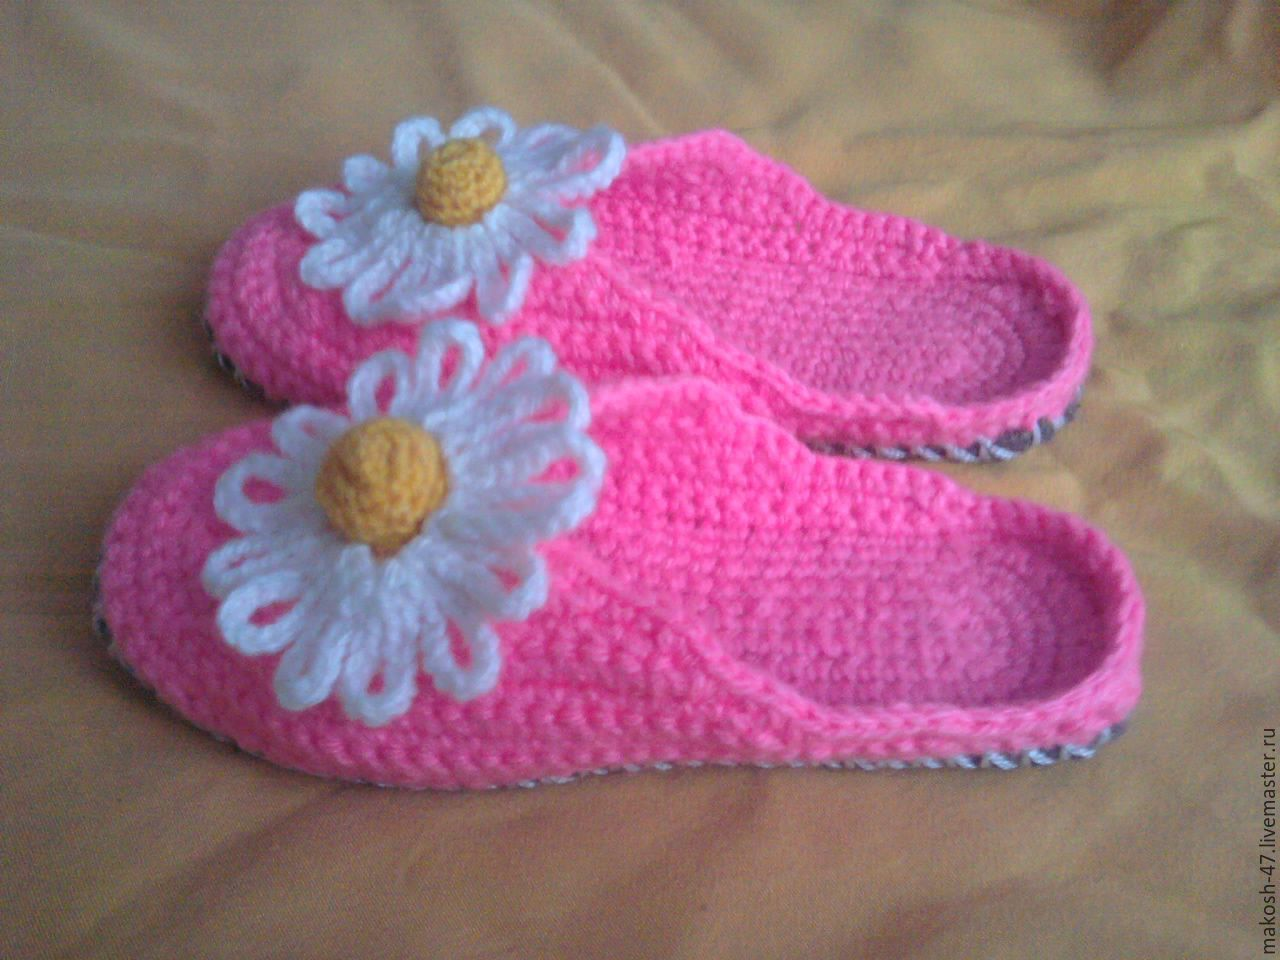 Buy Knitted Bedroom Slippers Flip Flops Chamomile Pink Slippers Handmad